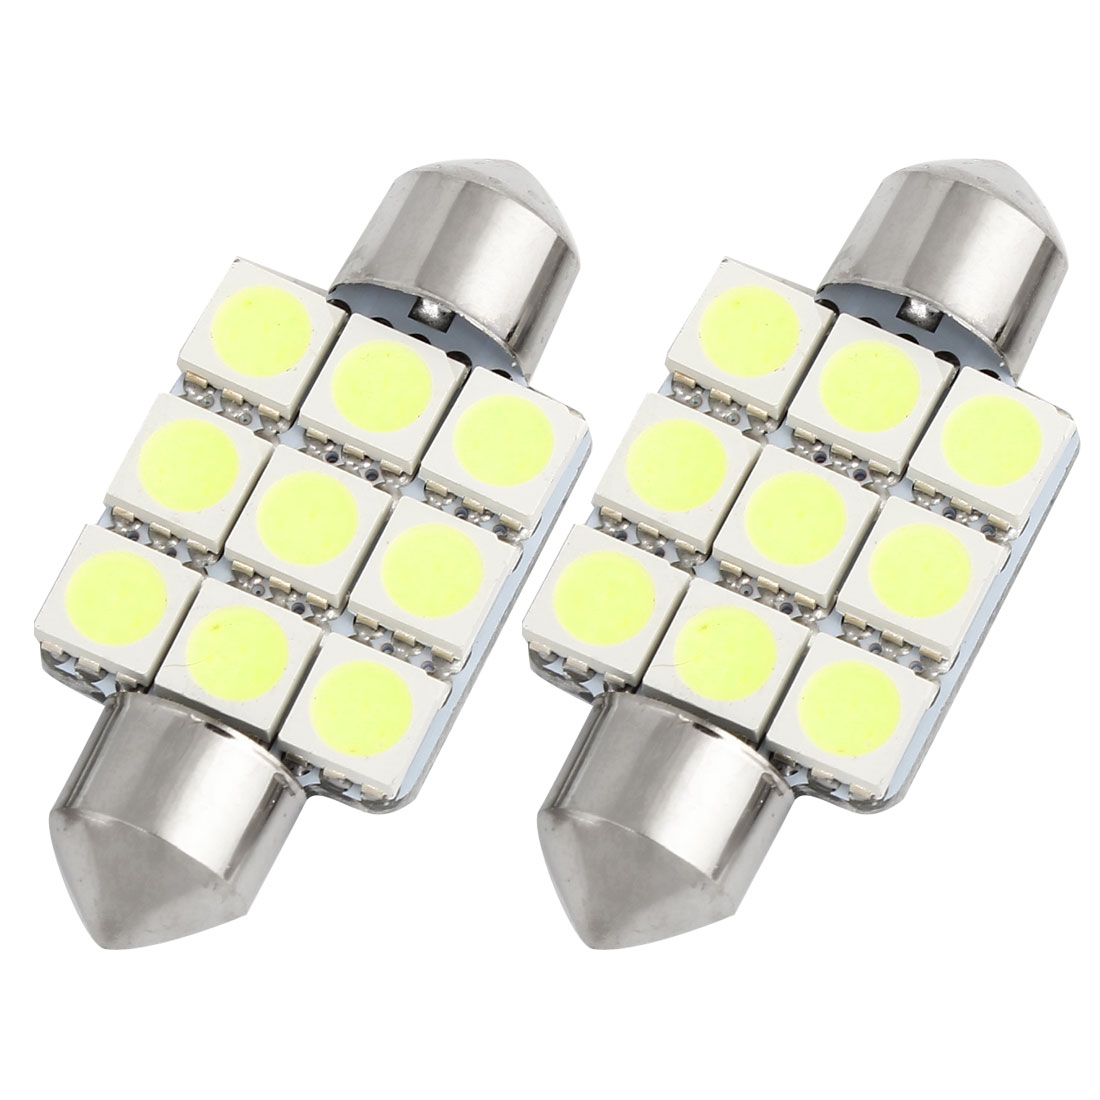 2 pcs 36mm White 9 LED 5050 SMD Festoon Dome Light Lamp DC 12V 6418 6413 Internal